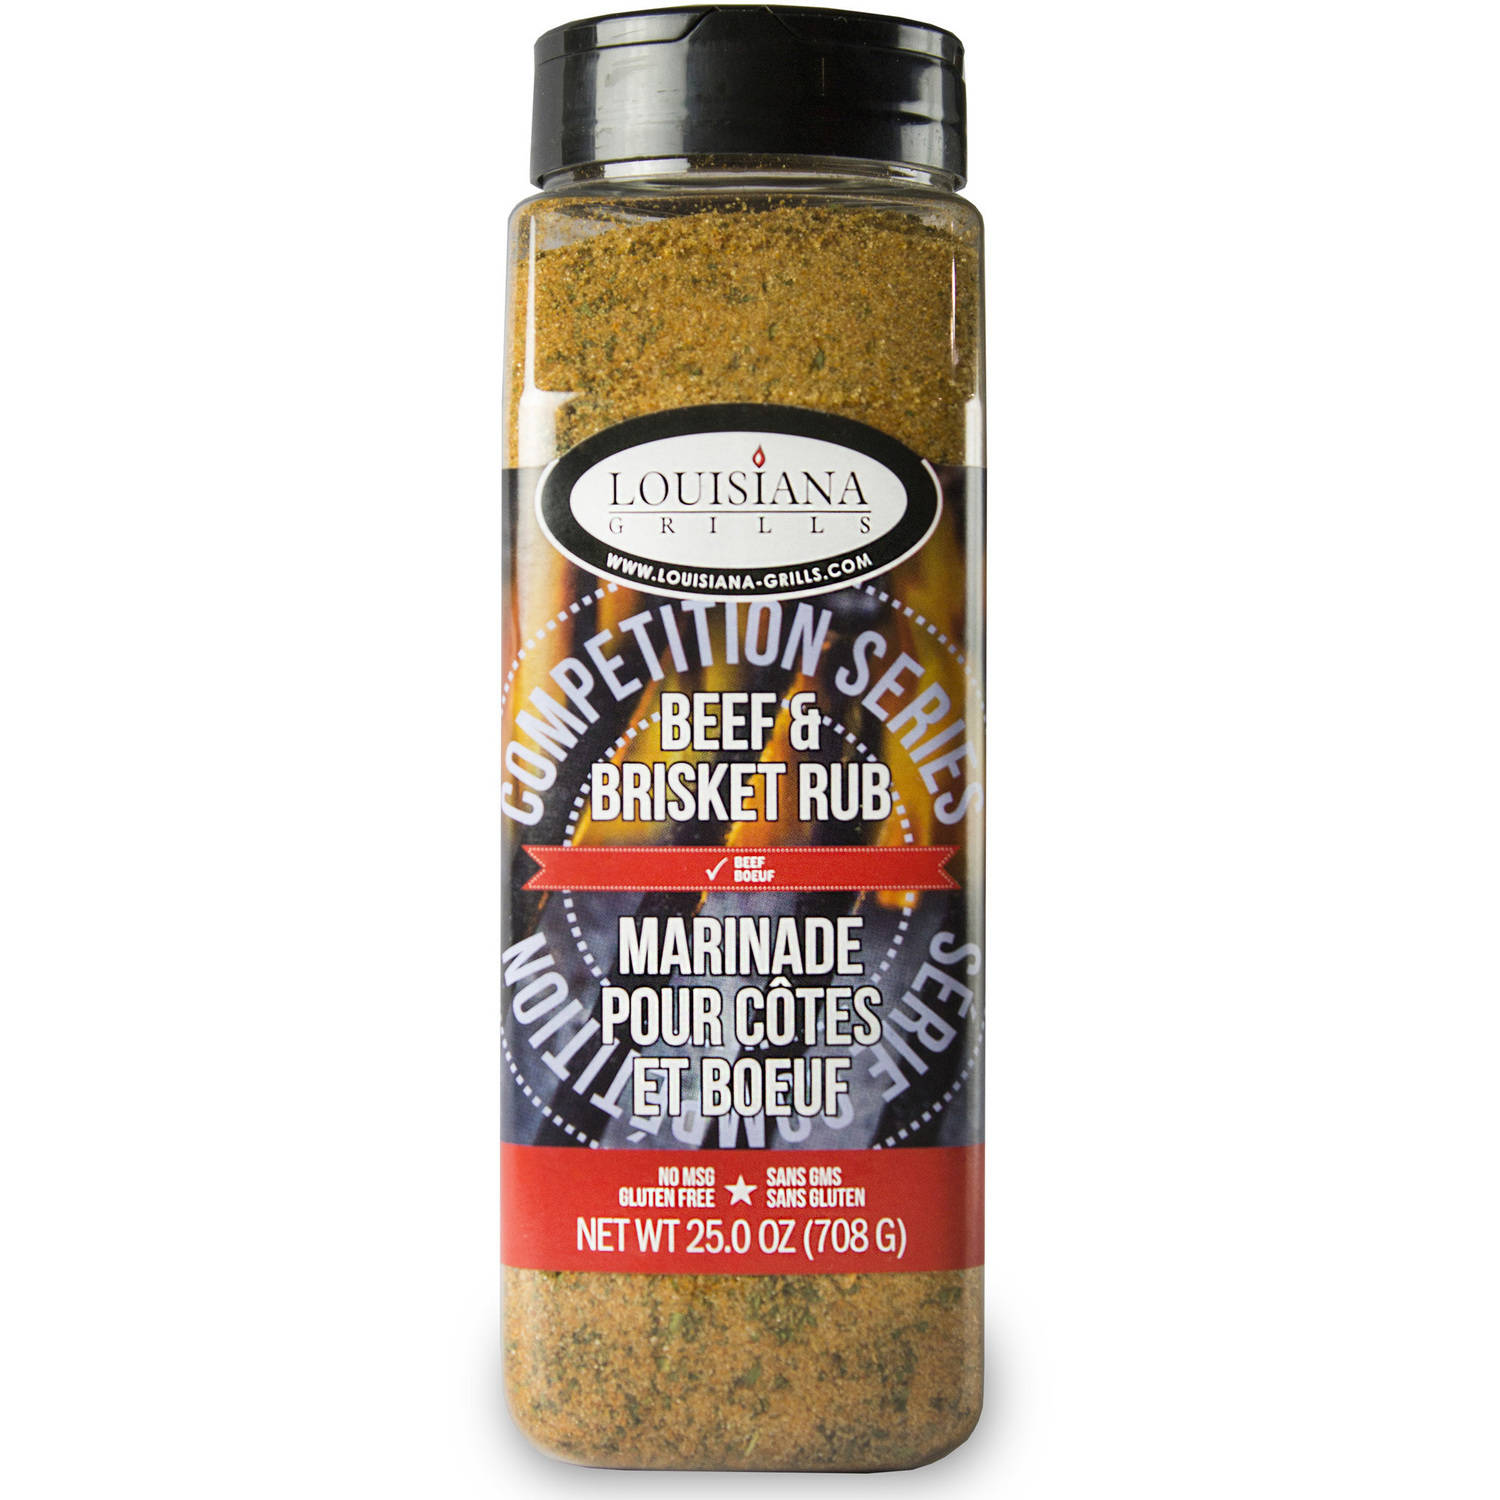 Louisiana Grills Spices and Rubs, Beef and Brisket Rub, 24 oz